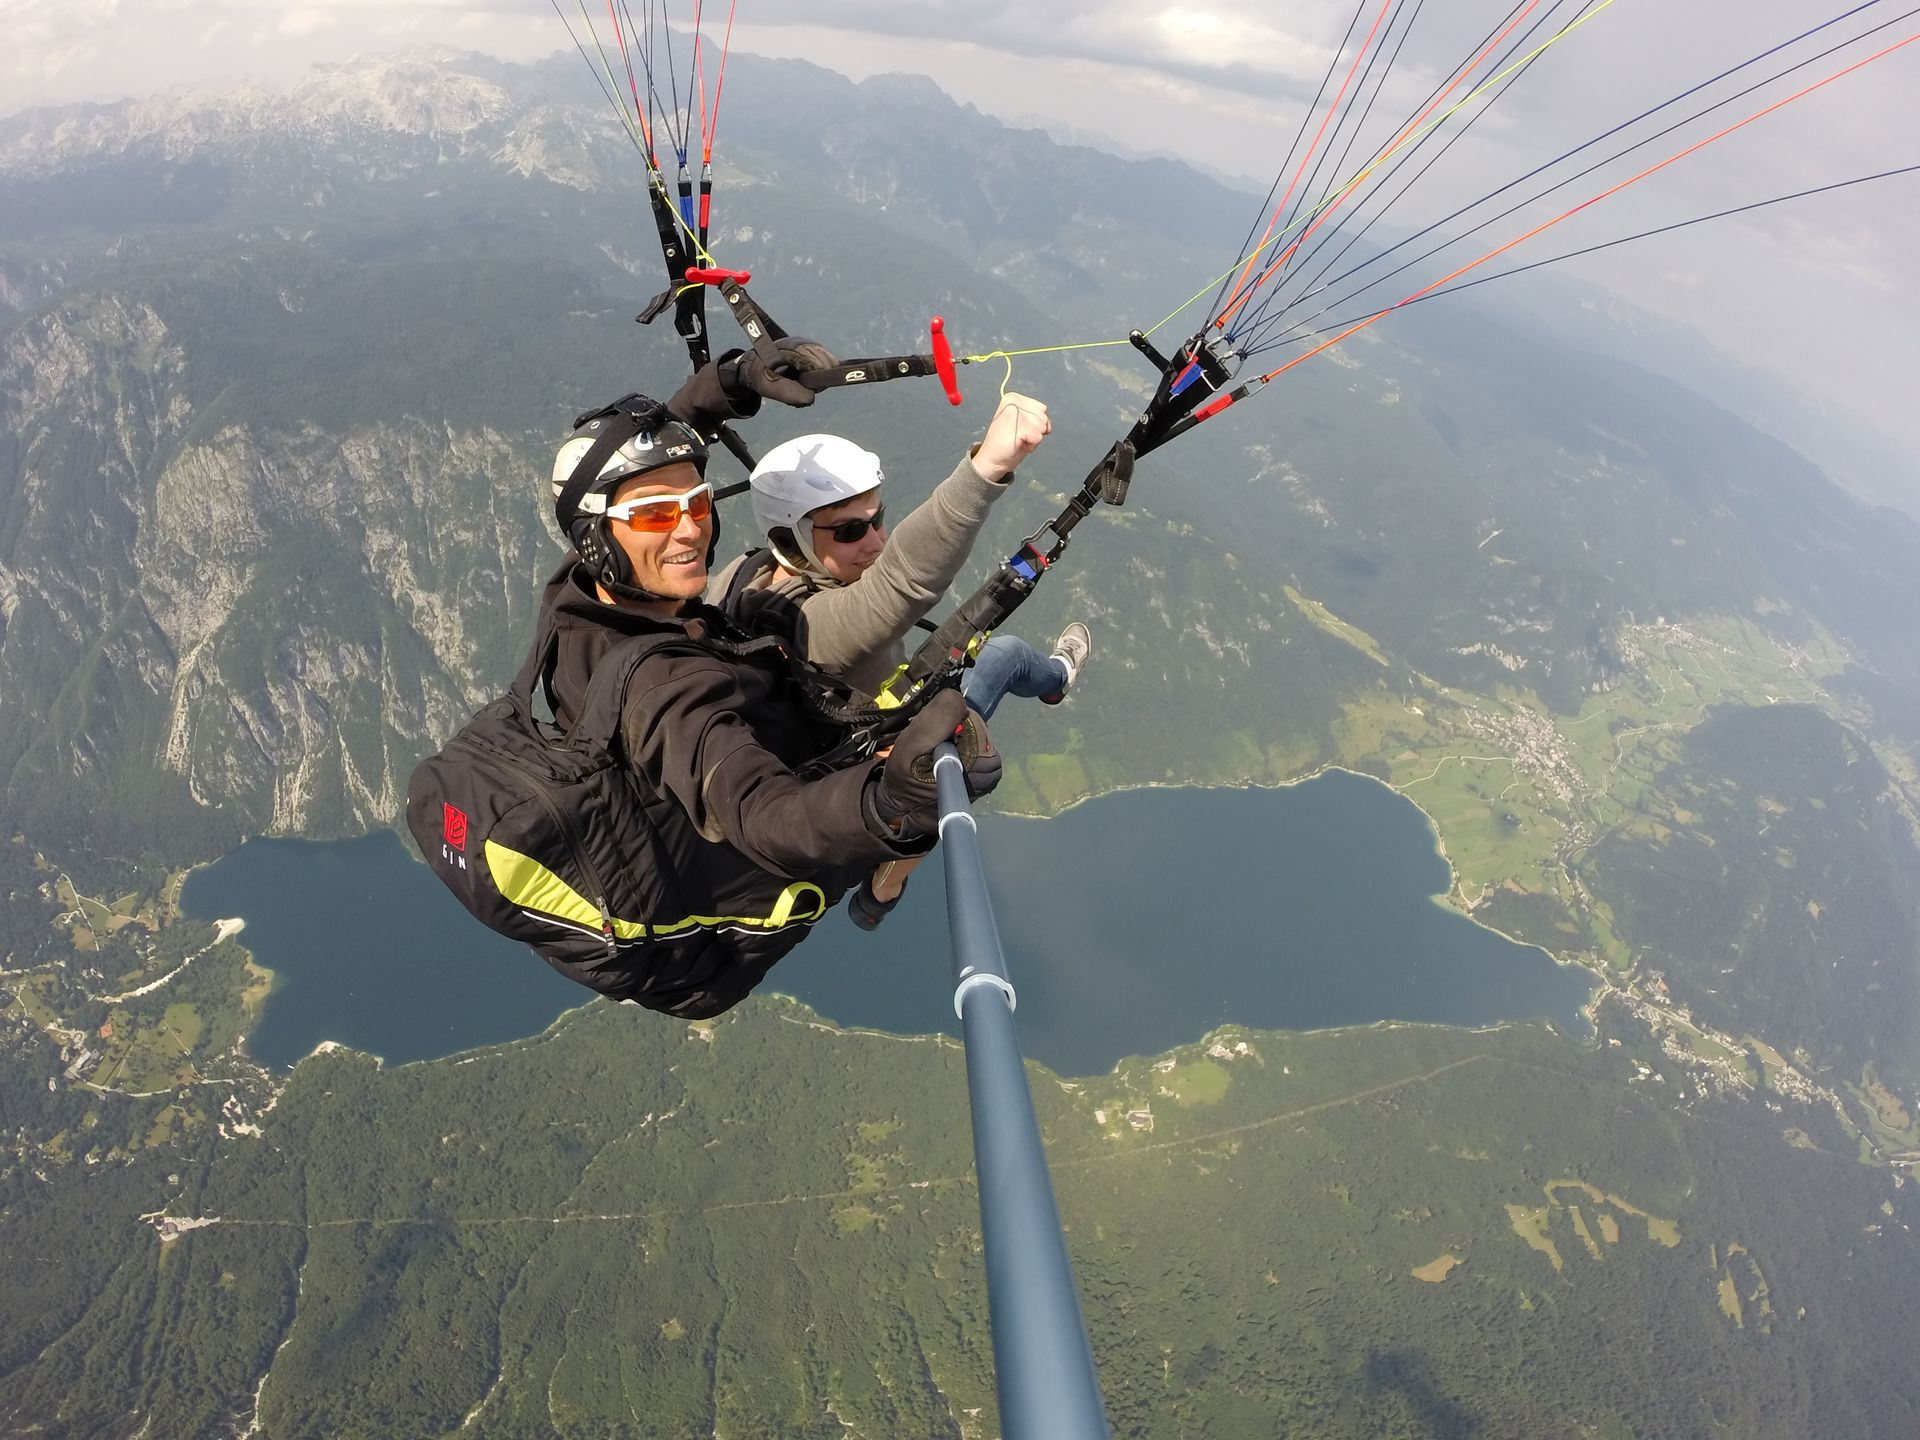 Tandem flight over Bohinj lake Bohinj Lake, Slovenia #ca772a1a-9b25-4acc-89c5-cdccbf730250